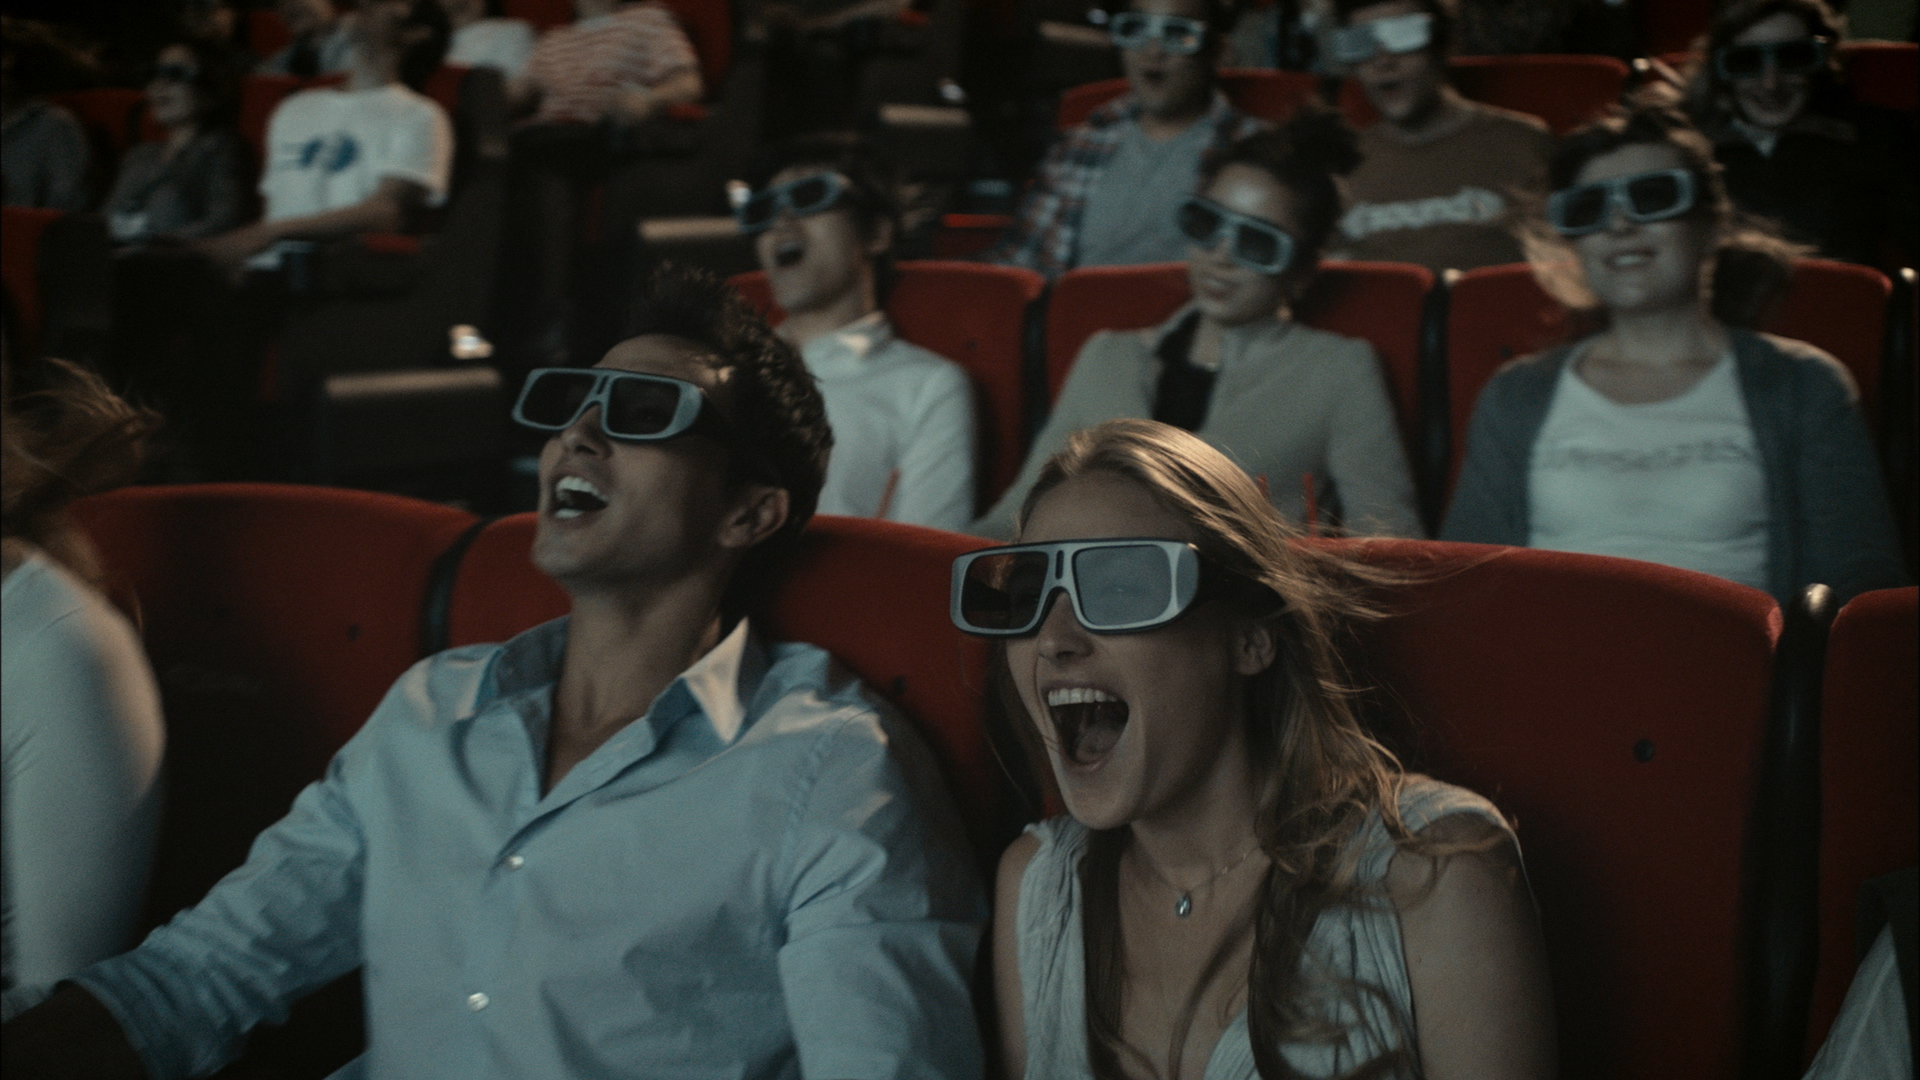 The 4D Stories being told by a screen - it's simply a change of medium, but the fascination and desire for this experience stays the same.